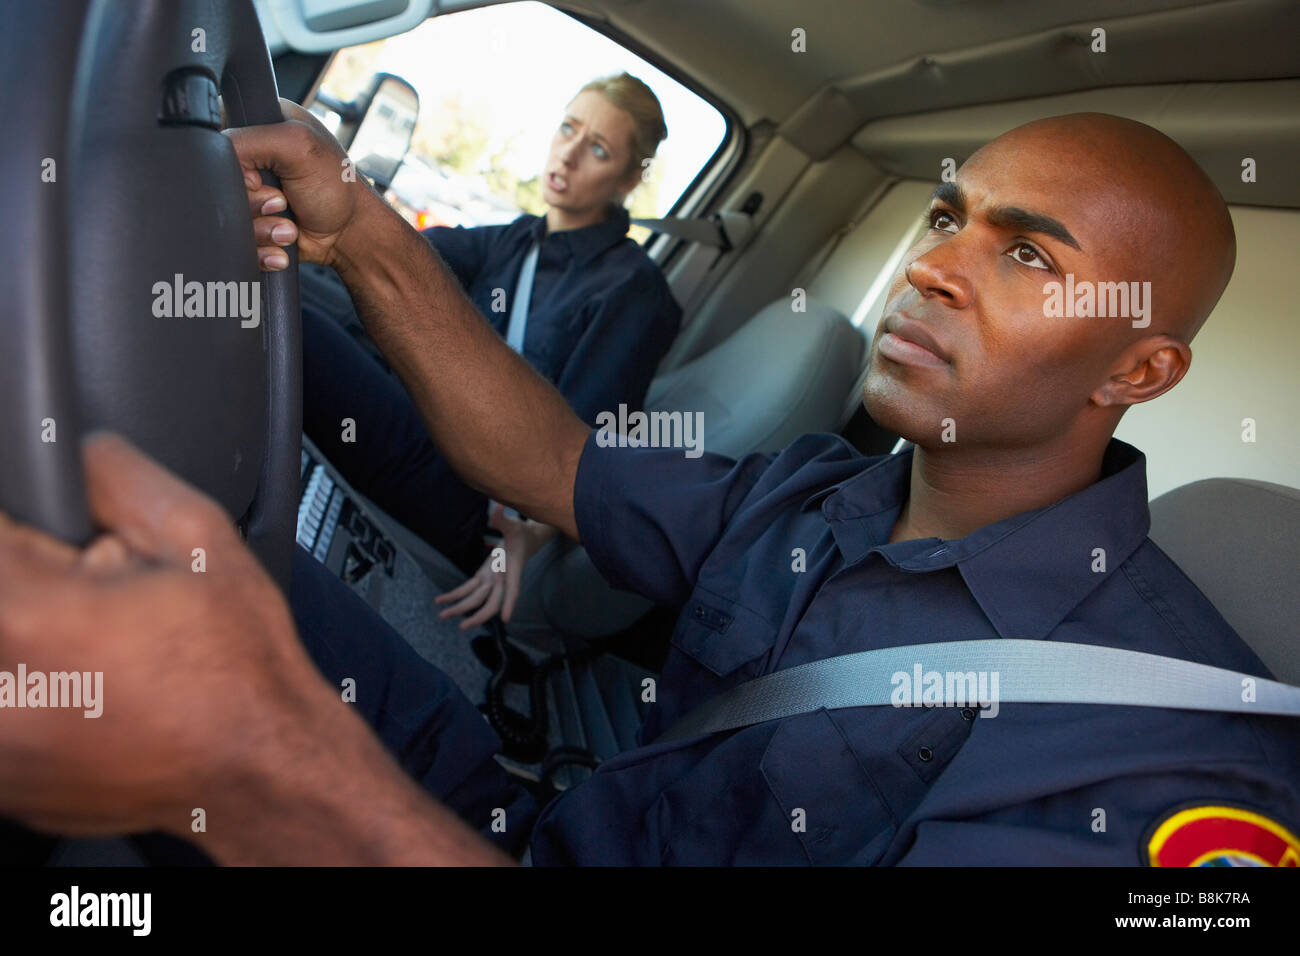 Ambulance driver and colleague on the way to an emergency - Stock Image